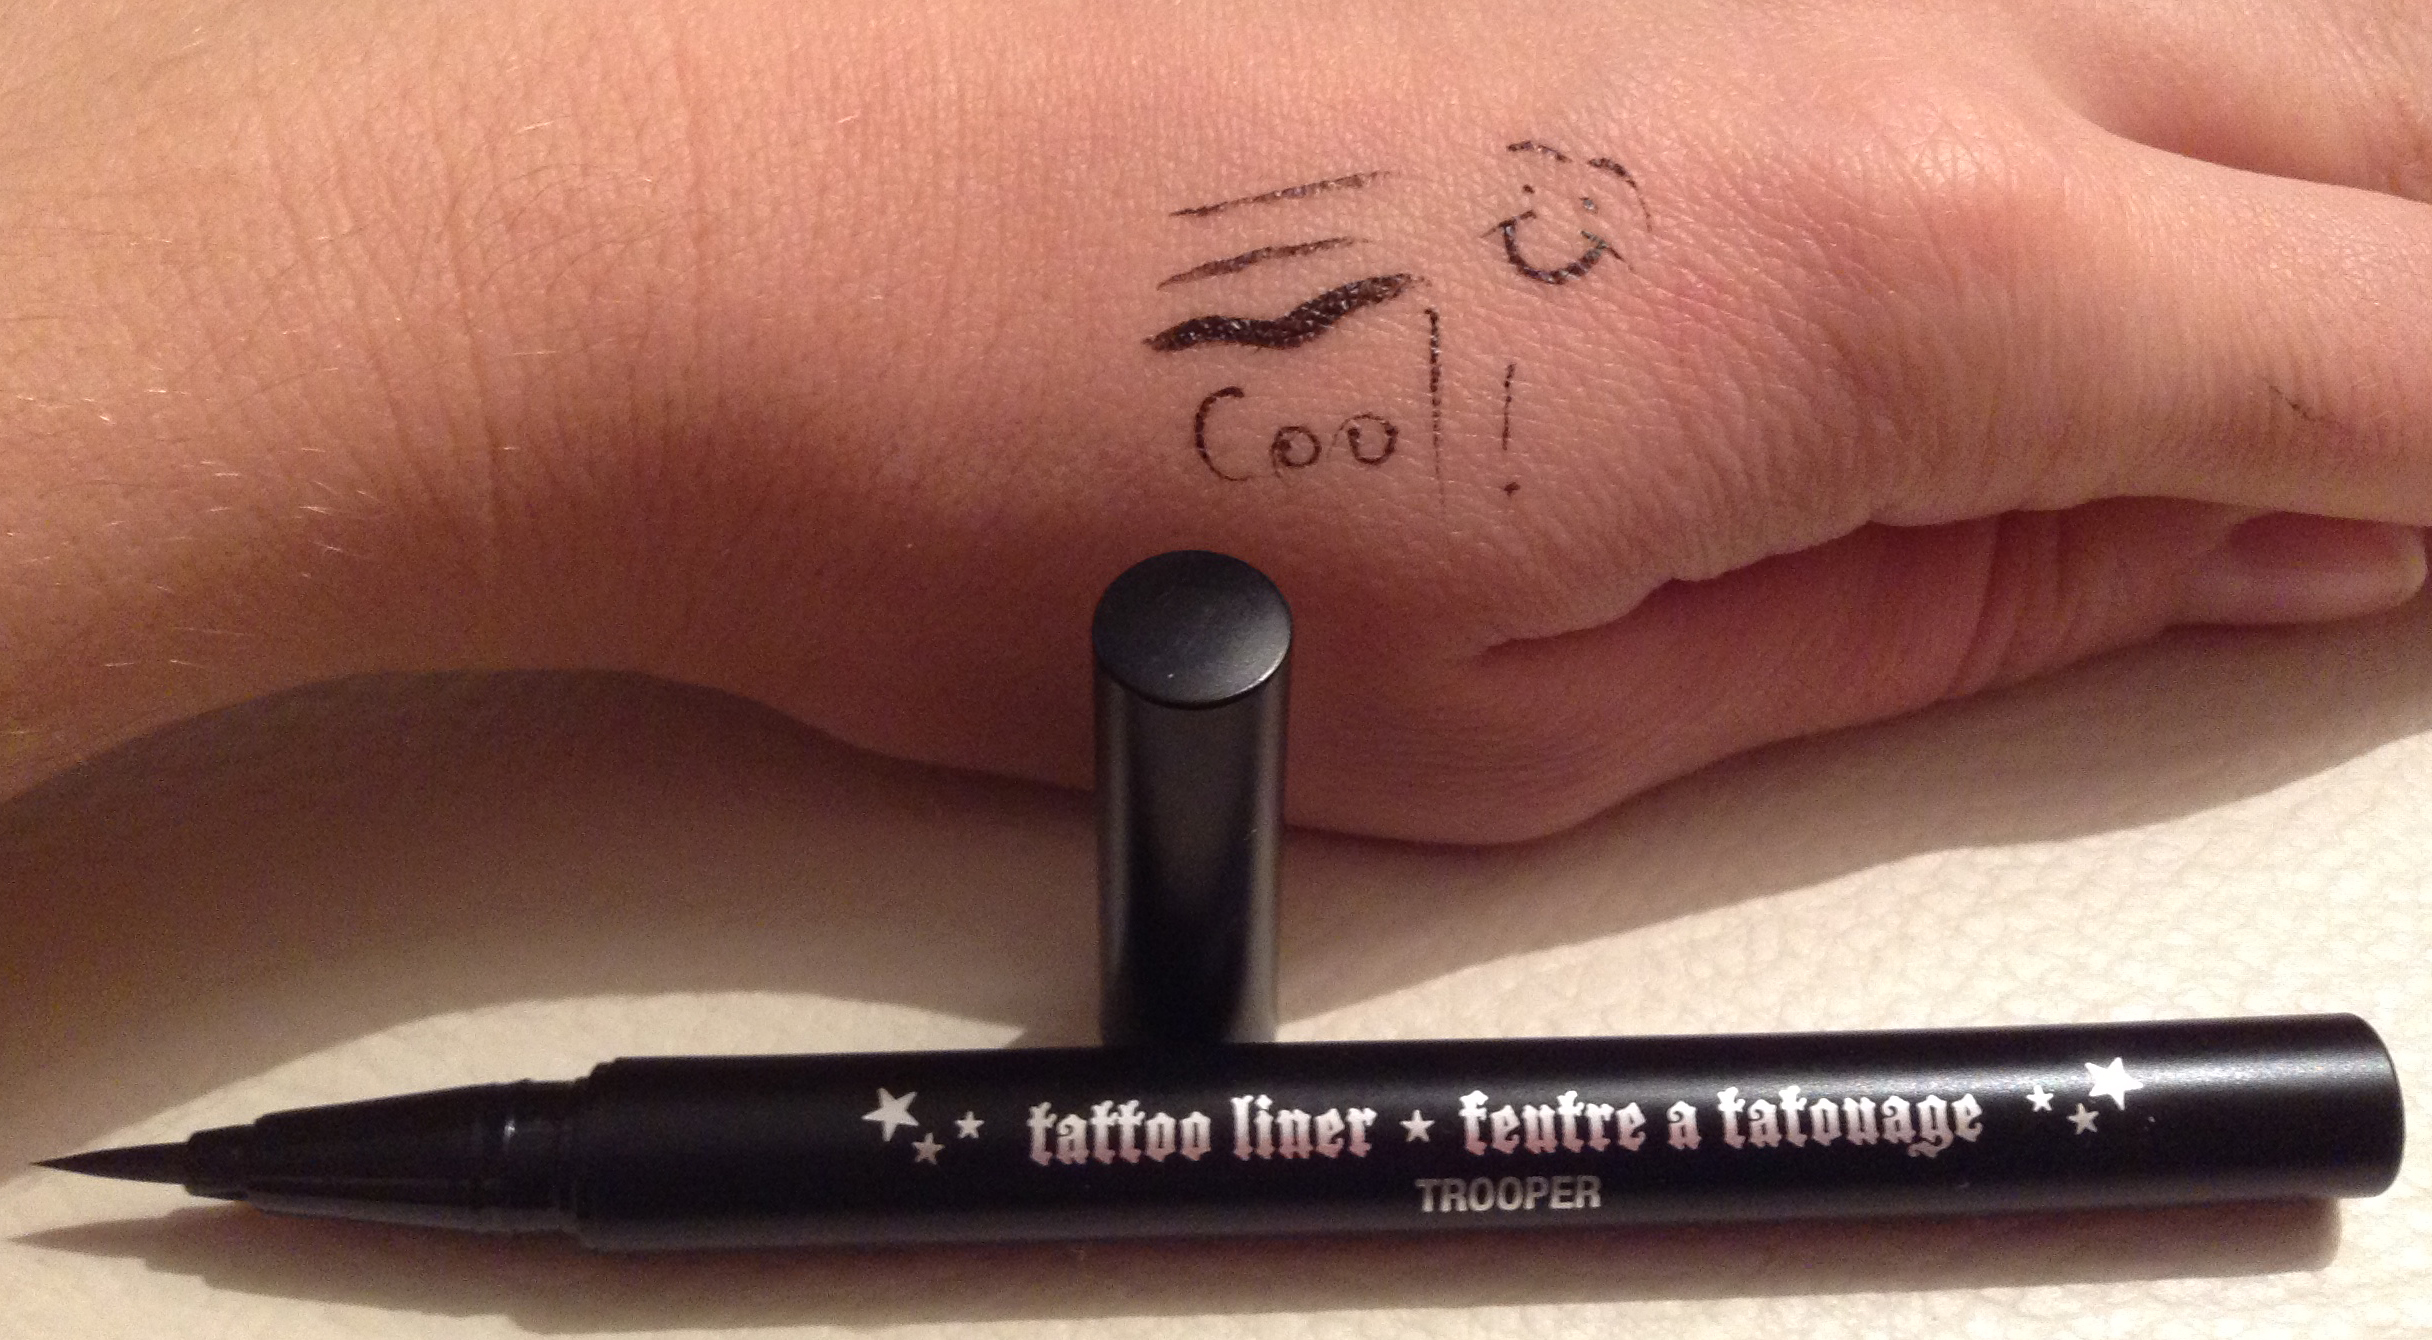 Kat Von D Tattoo Eye Liner In Trooper Fashion Rash